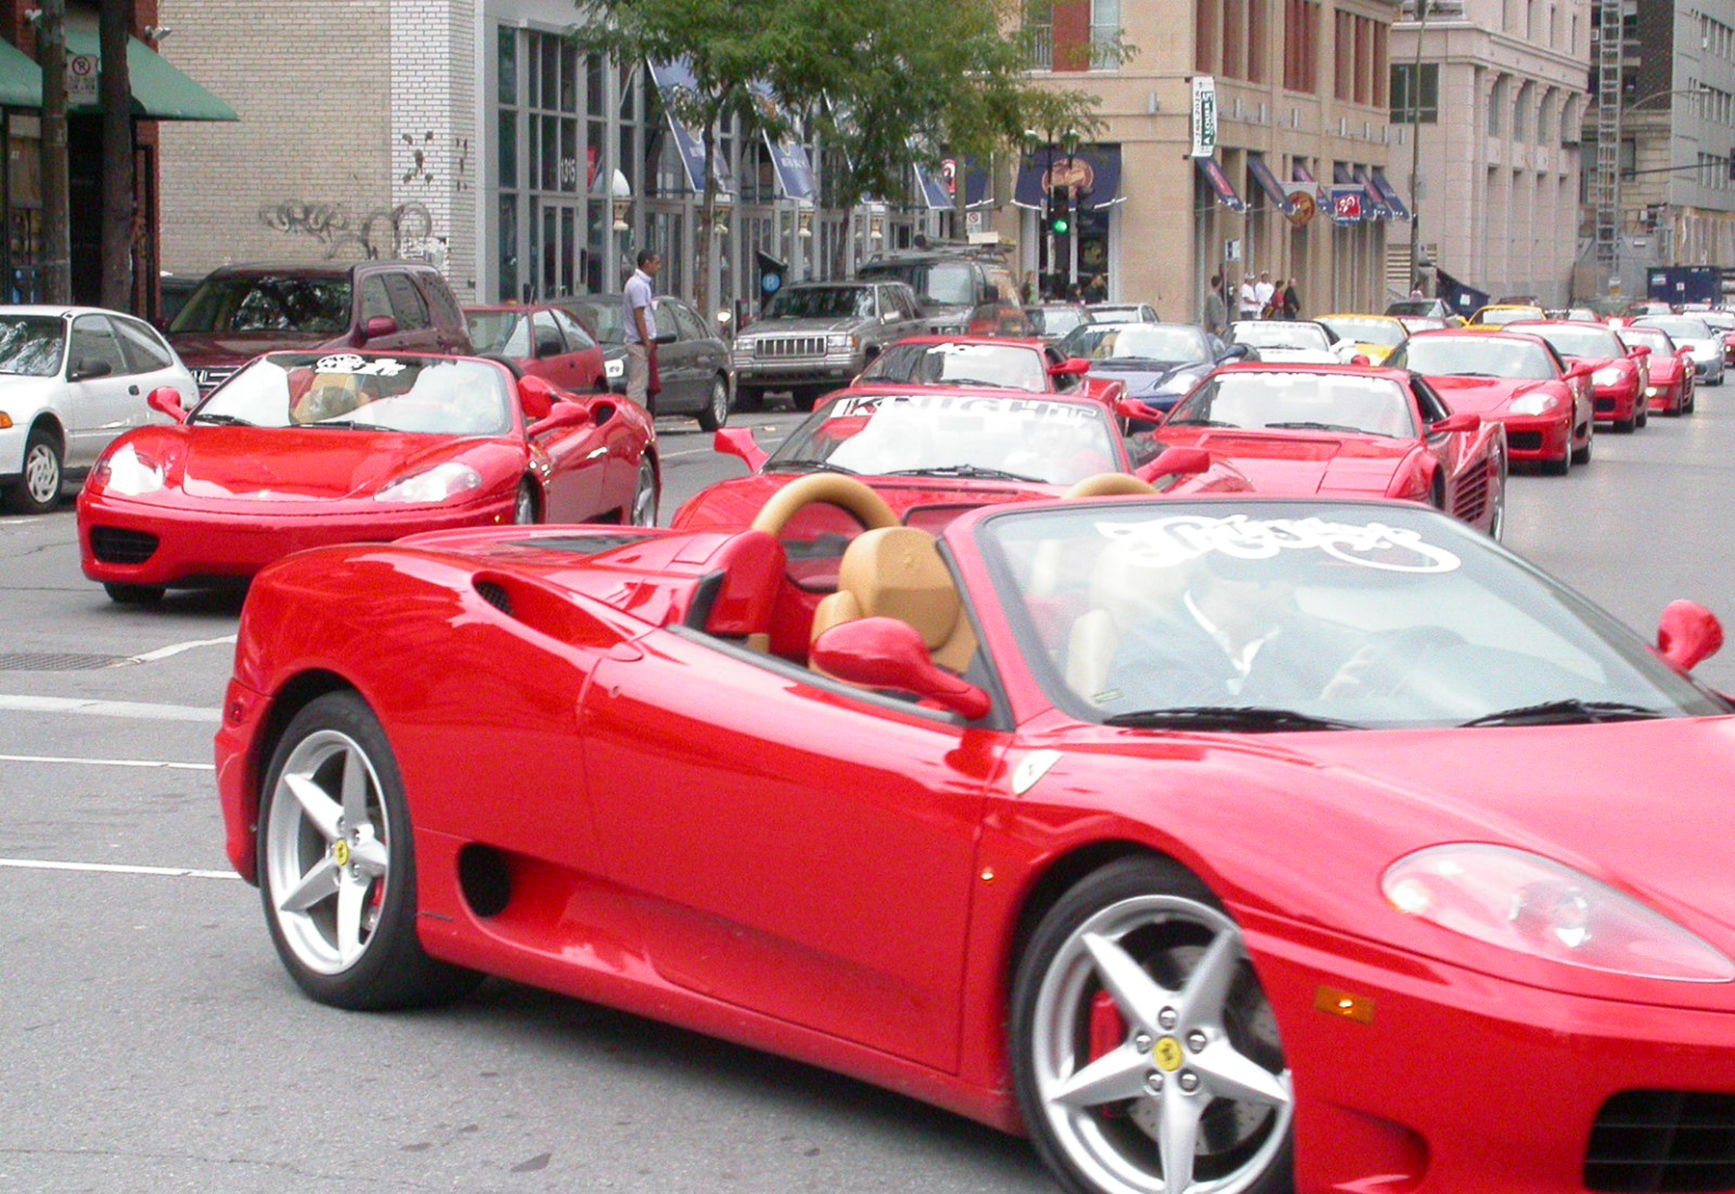 Make A Wish Quebec And The Ferrari Club Of America Offering A Dream Ride